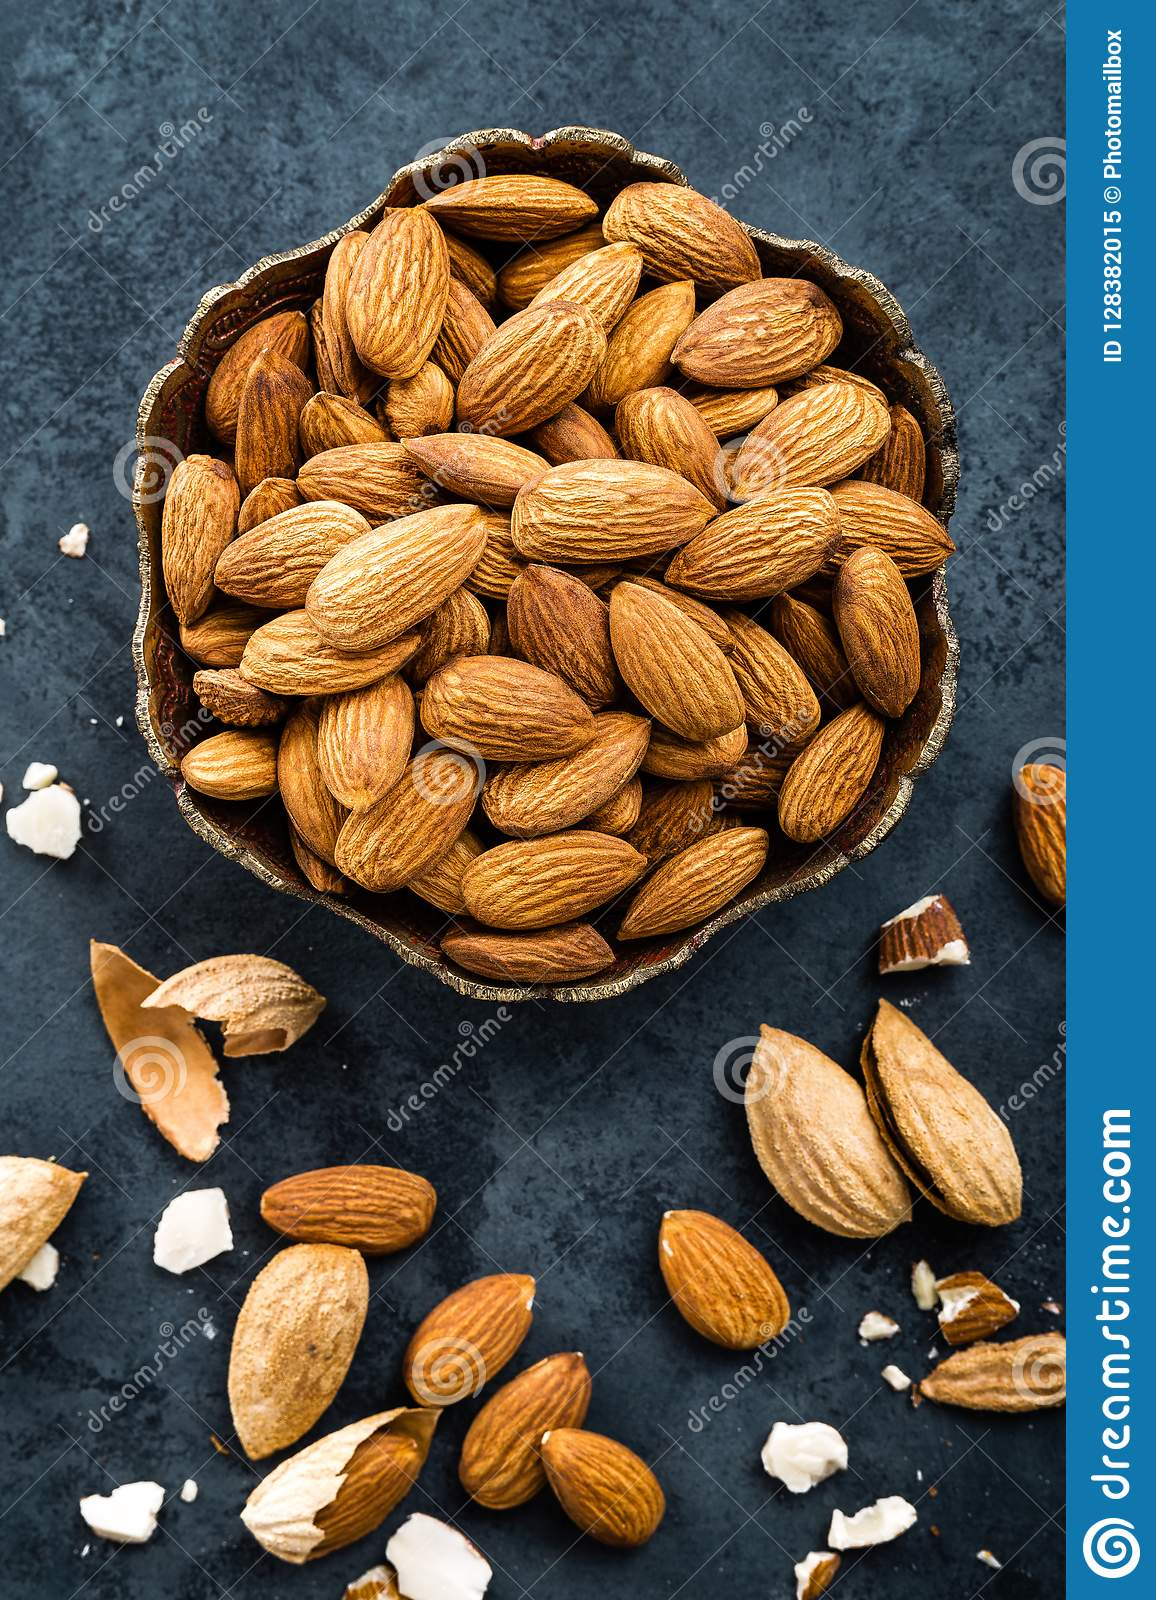 Almond Nuts In Bowl. Almonds Stock Image - Image of fresh ...